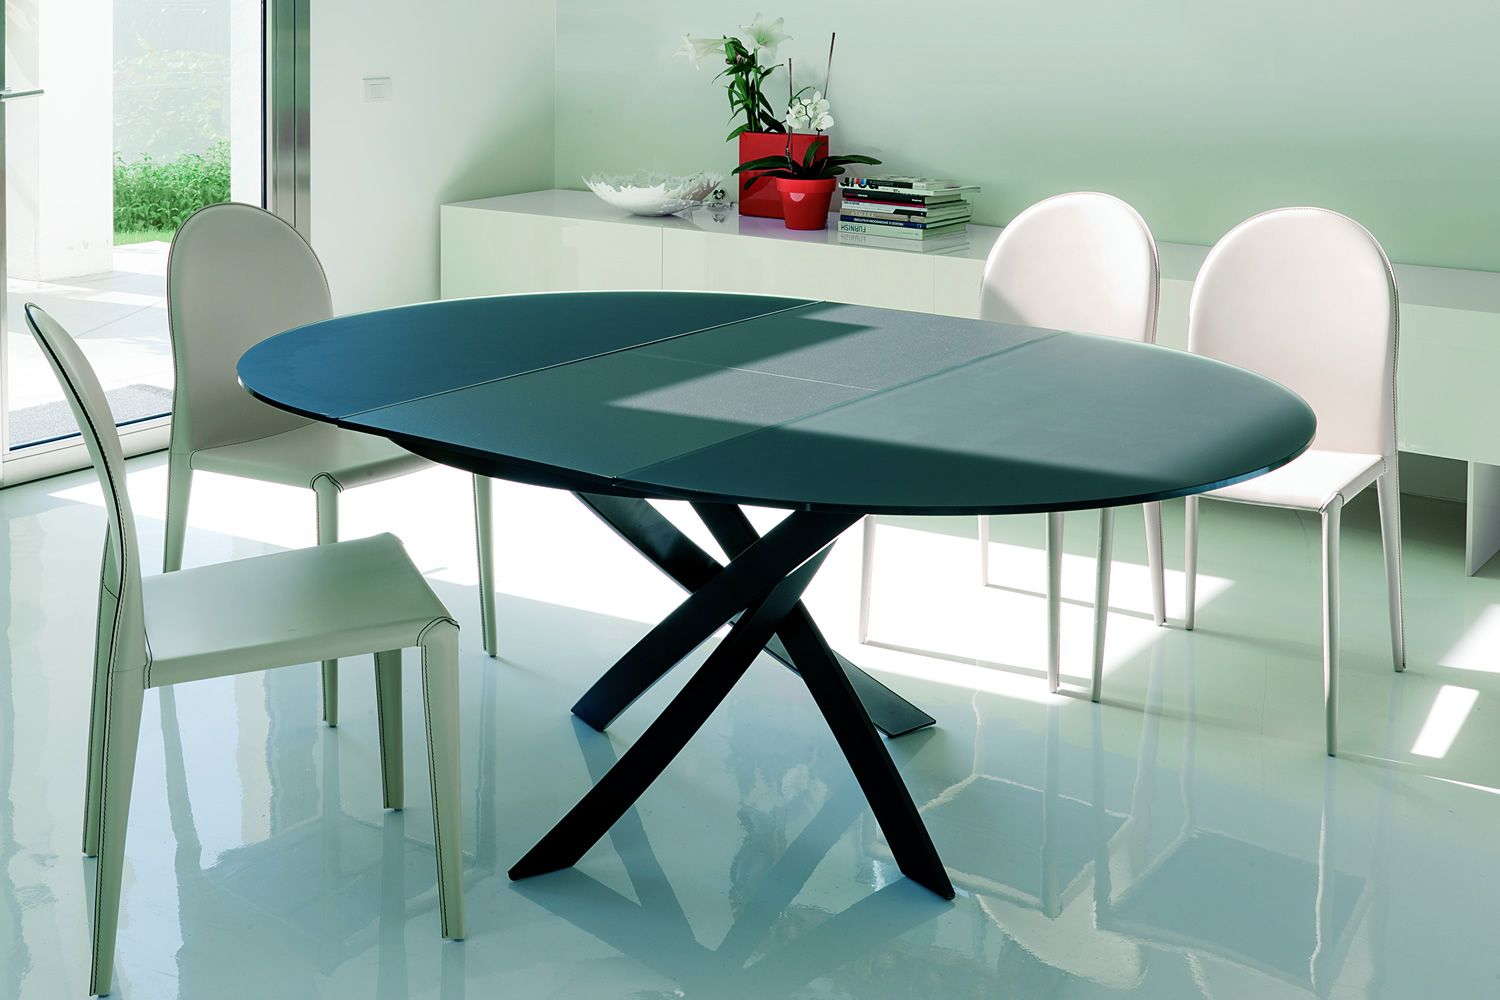 Extendible round table, structure lacquered in anthracite and glass Velvet anthracite